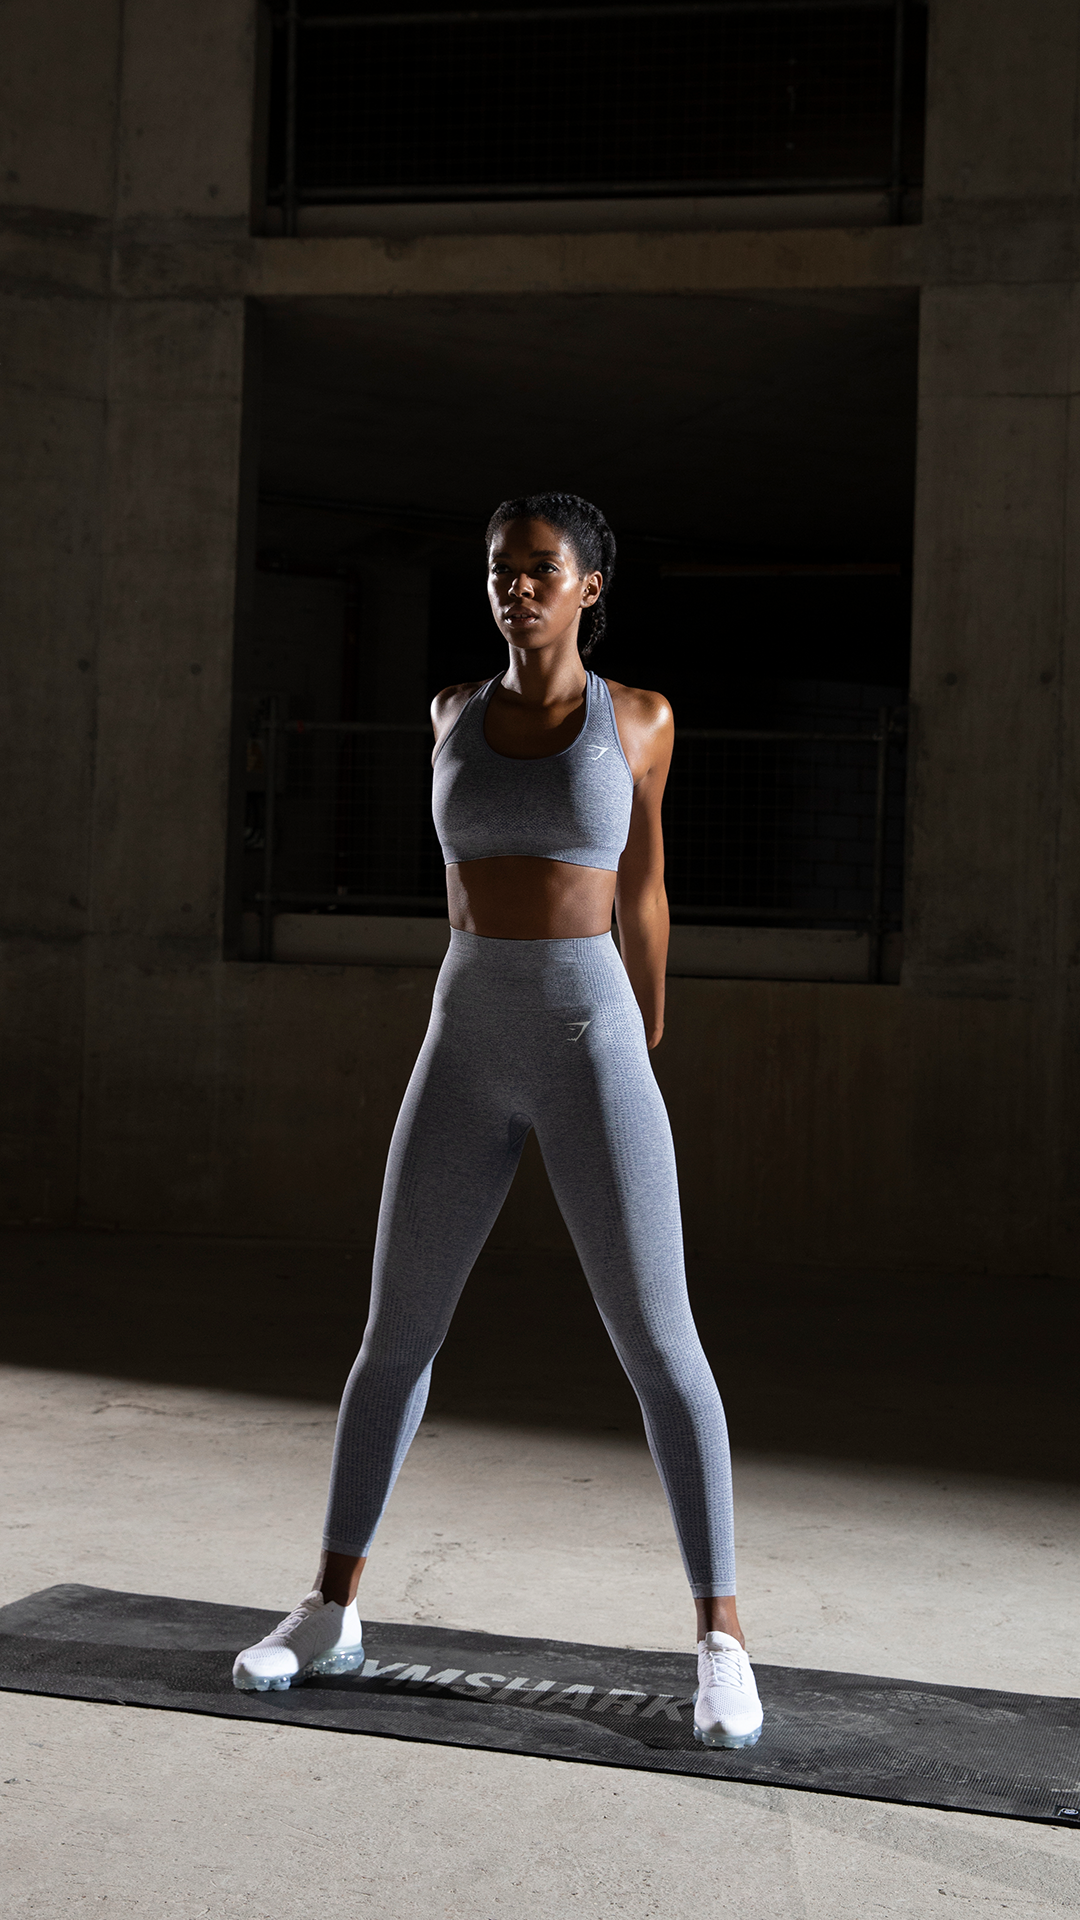 b58f96fc1ede3 The Vital Seamless collection has been designed with your workout in mind.  Train, sweat and achieve for your workout and for yourself! #Gymshark #Gym  #Sweat ...